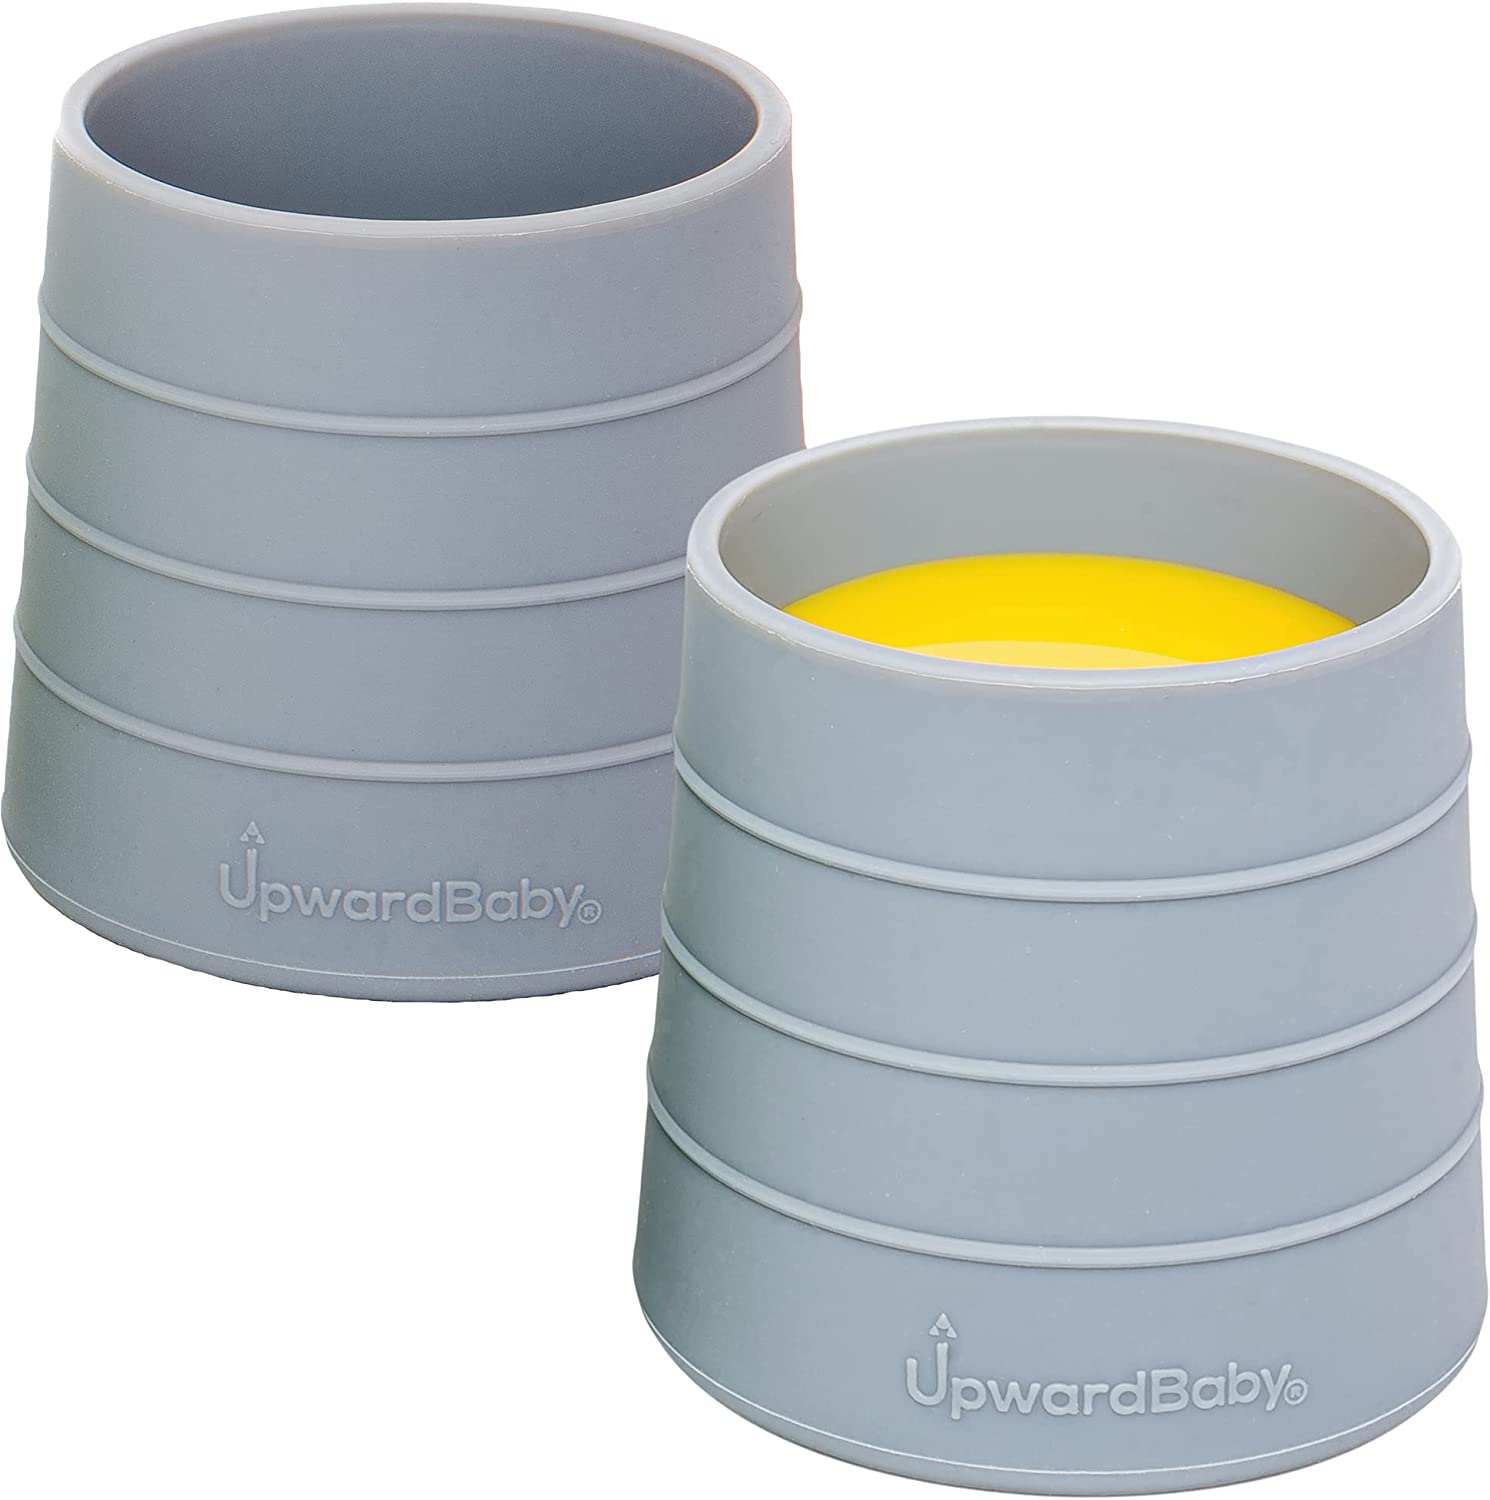 UpwardBaby Baby Toddler Cups Spill Proof mos+ 2-Piece for Ranking TOP20 6 Excellent Set